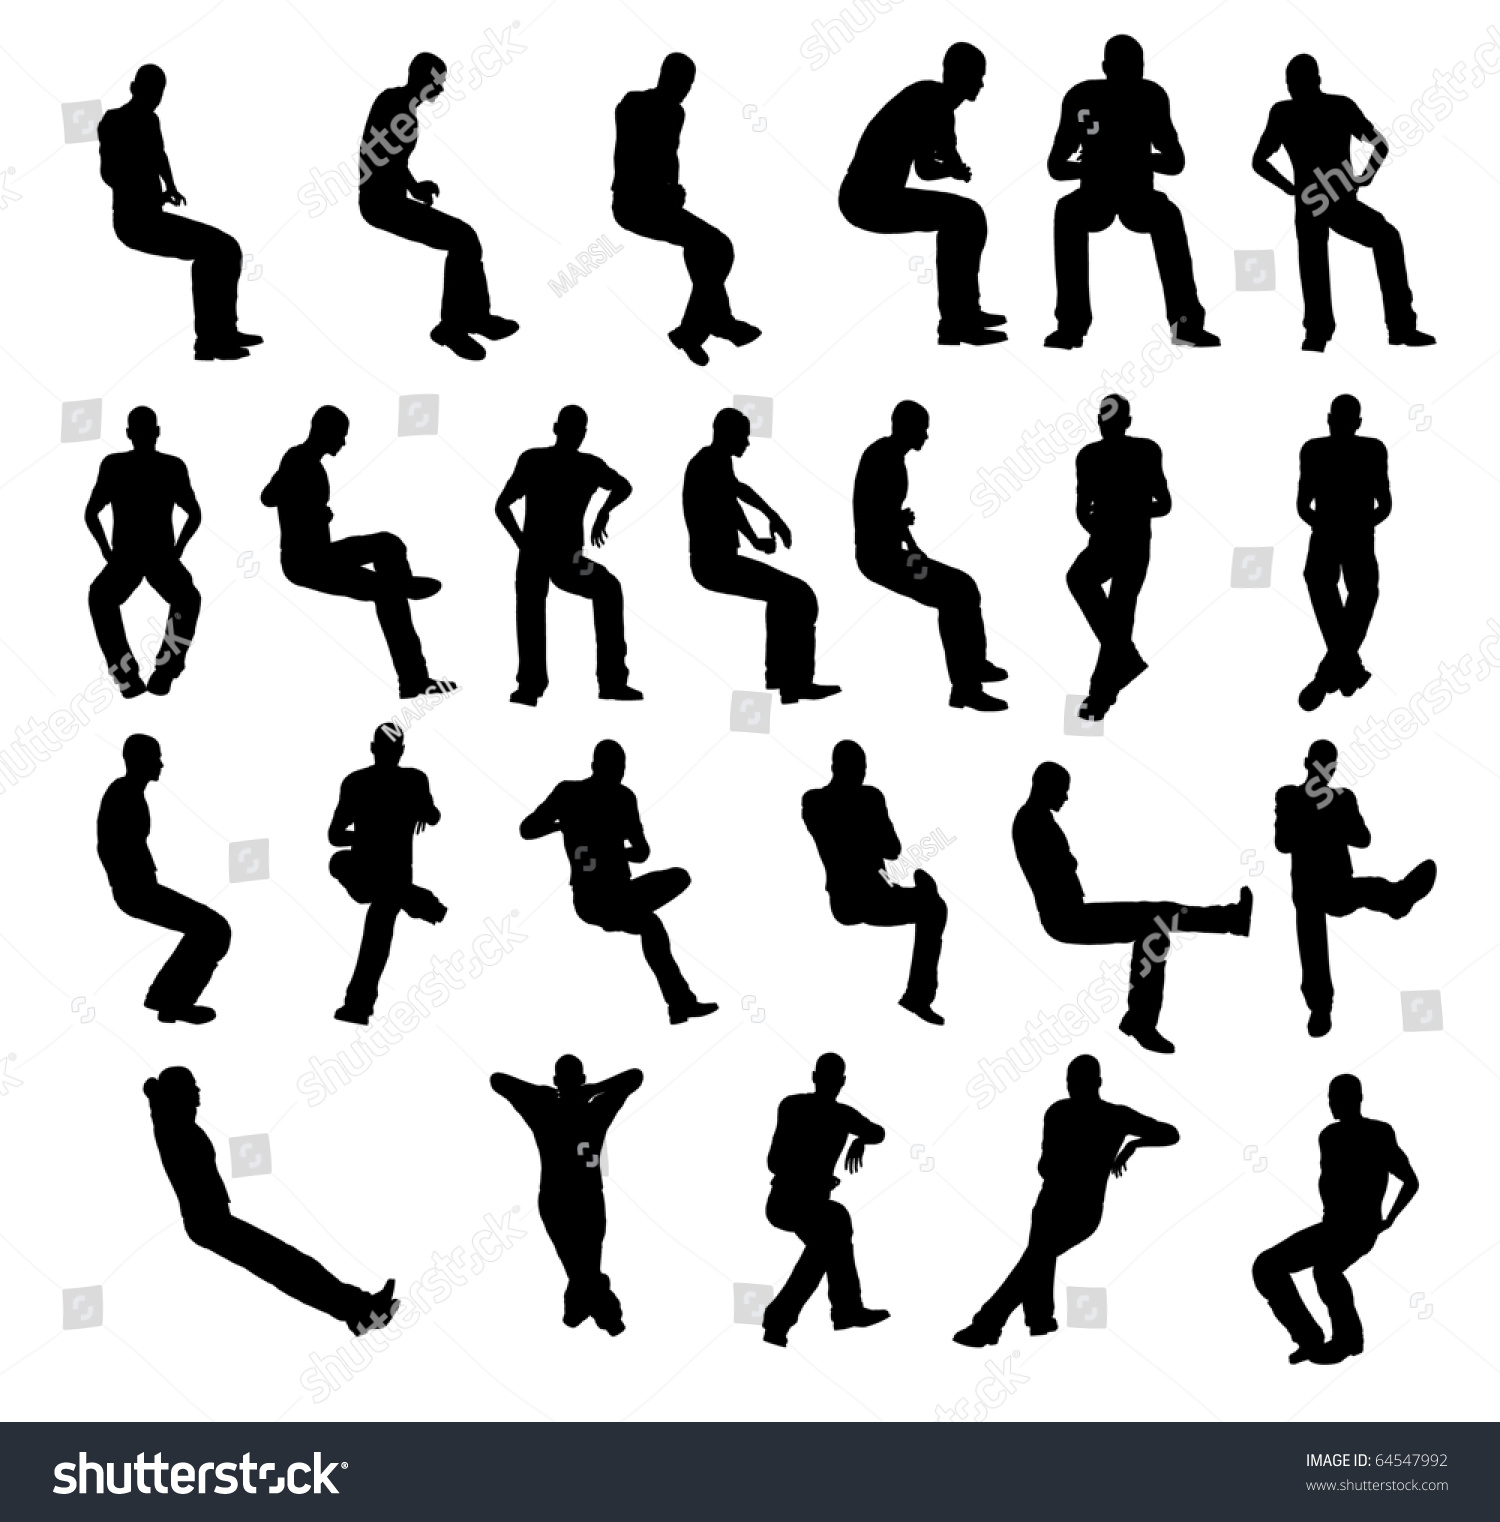 Silhouette Man Sitting Stock Photo 64547992 : Shutterstock Relaxing Dog Music